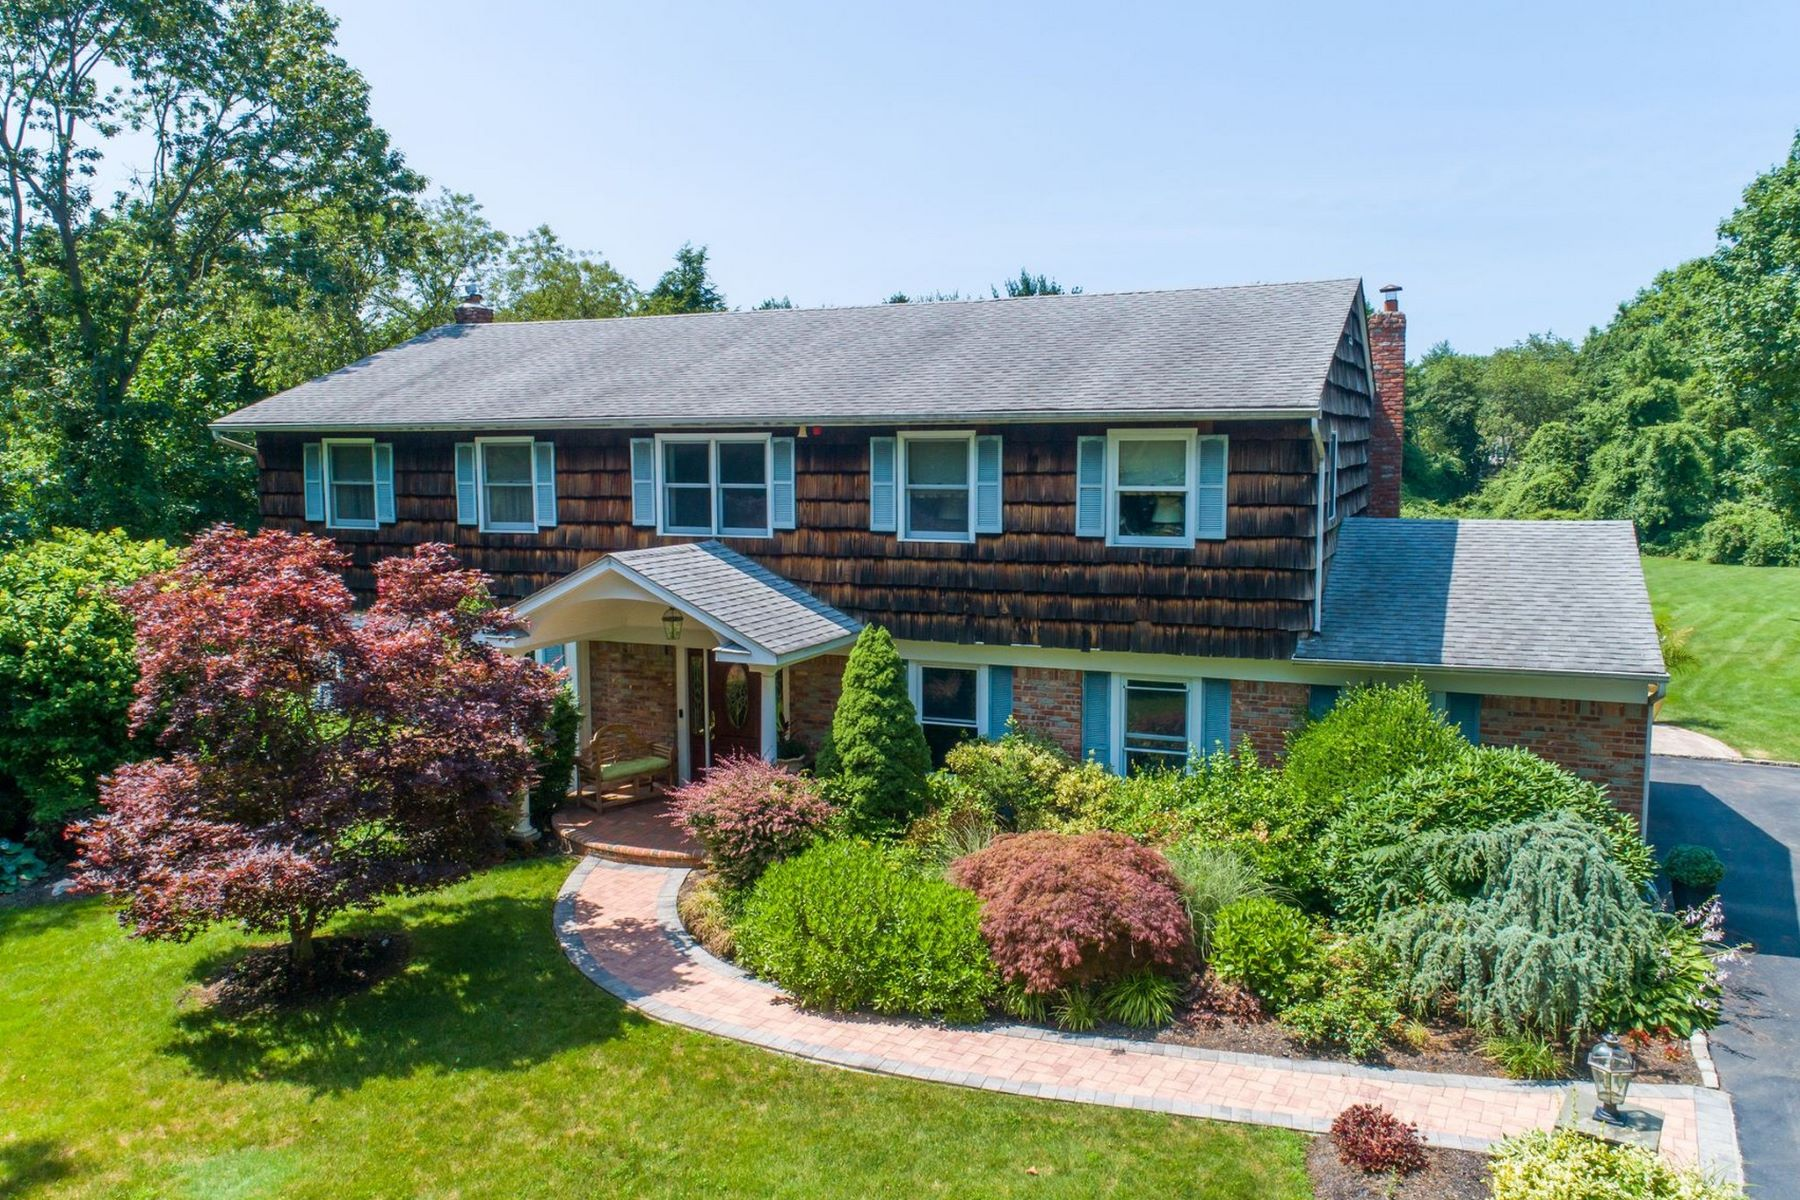 Single Family Homes for Sale at Dix Hills 36 Highfield Ct Dix Hills, New York 11746 United States